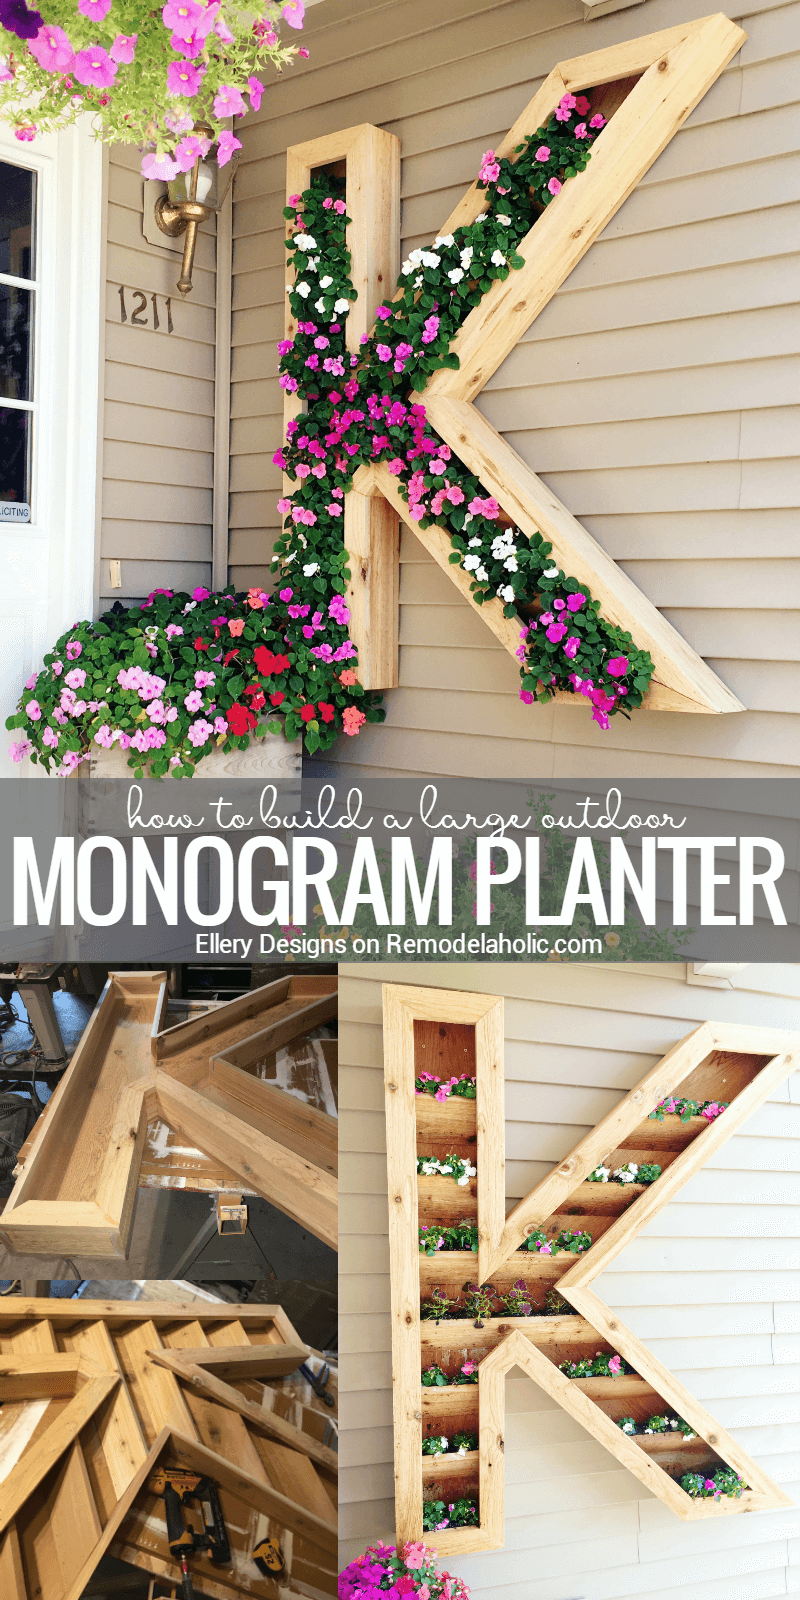 Pretty Monogram Planter Project for Spring